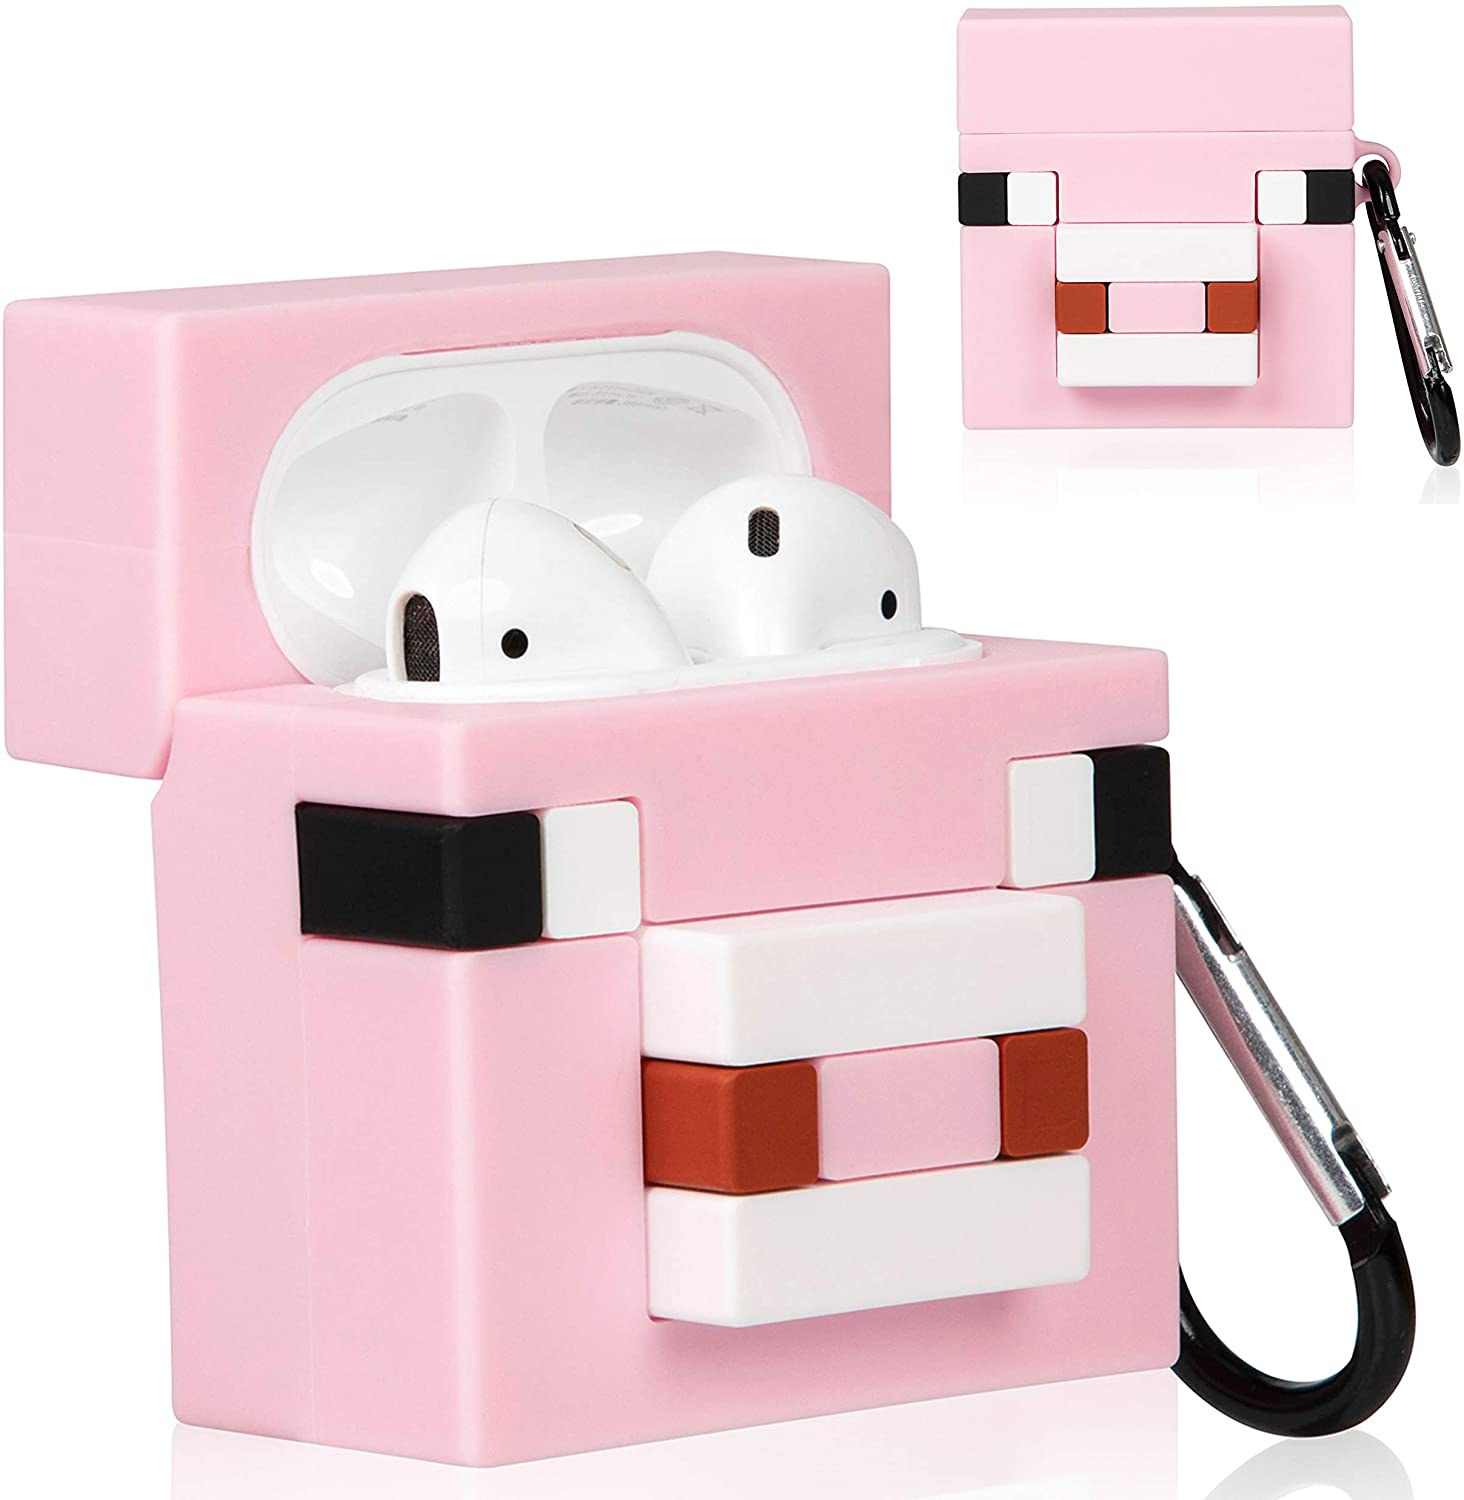 WowChic Case Compatible for Airpods 2/1, Cute Unique Design Cartoon Fashion Character Air pods Charging Cover Accessories Shockproof Kits, Cool Fun Funny Silicone Protective for Airpod (Minecraft-Pig)